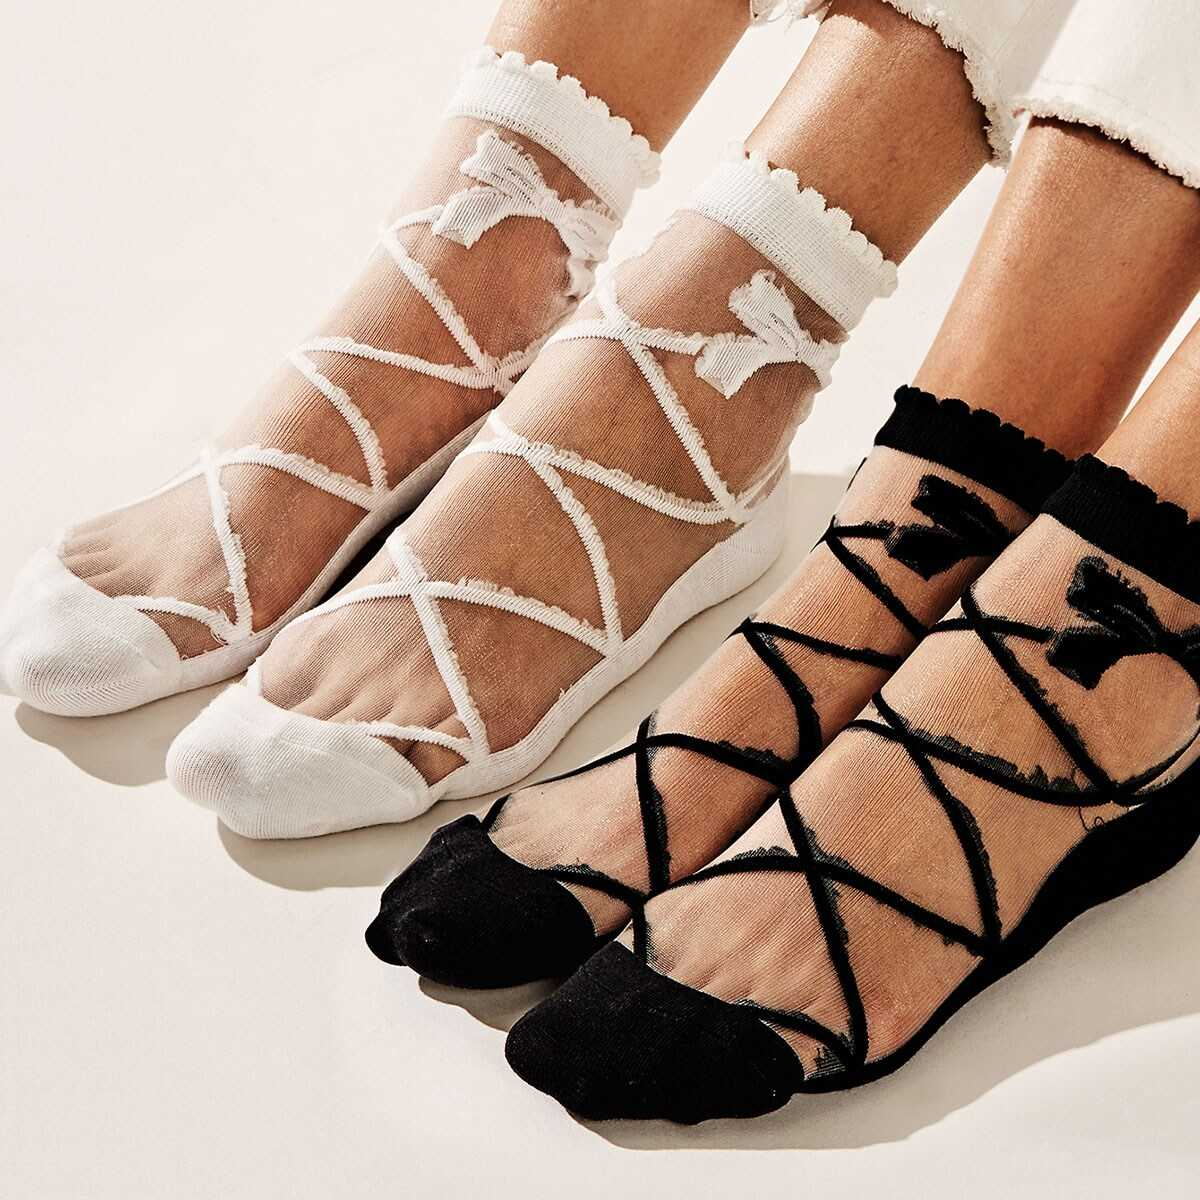 Bow Tie Decor Mesh Socks 2pairs in Black and White by ROMWE on GOOFASH